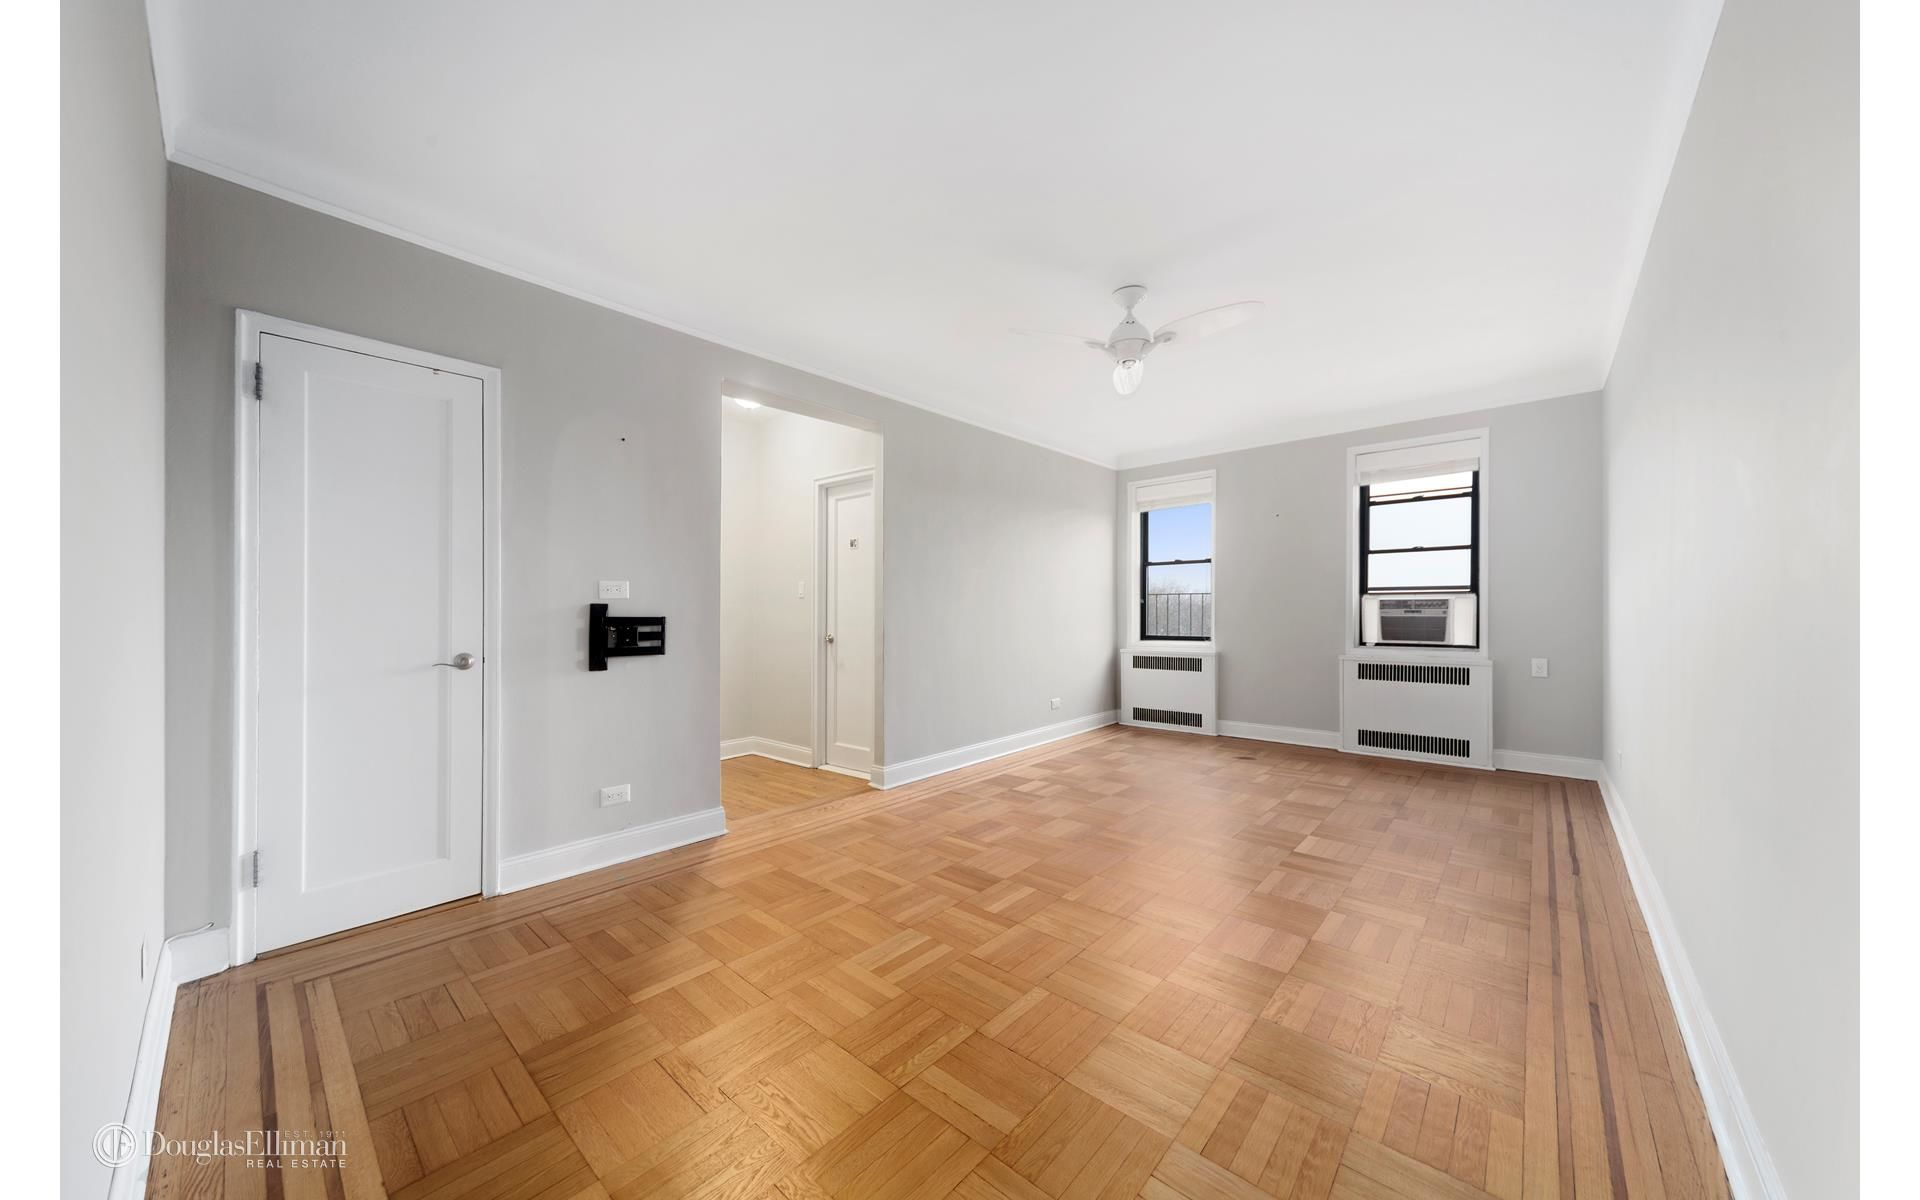 2835 Bedford Ave, APT 6G Photo 1 - ELLIMAN-2584371